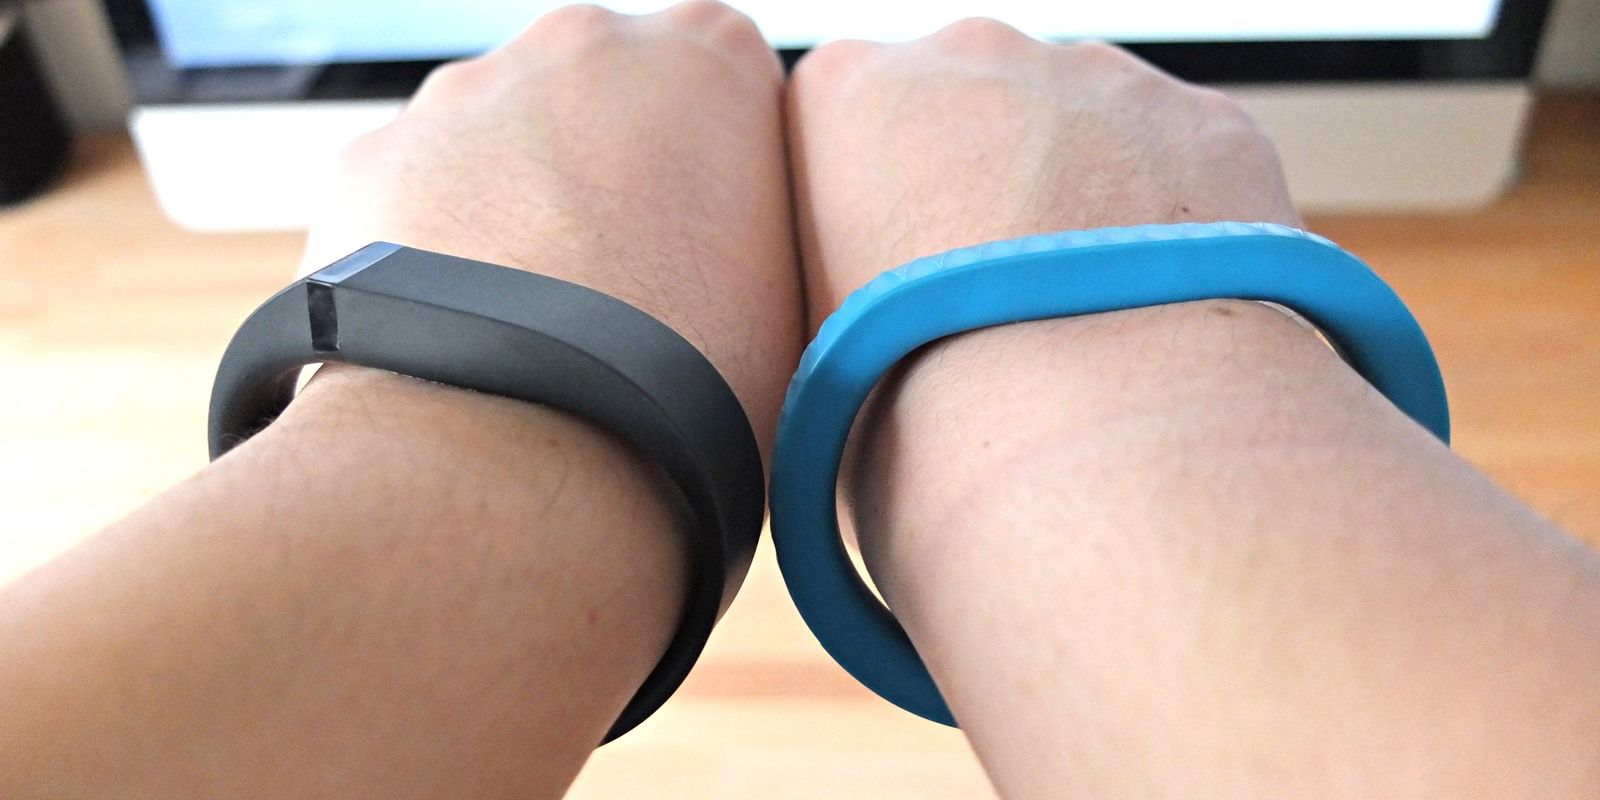 fitbit flex vs jawbone up comparison